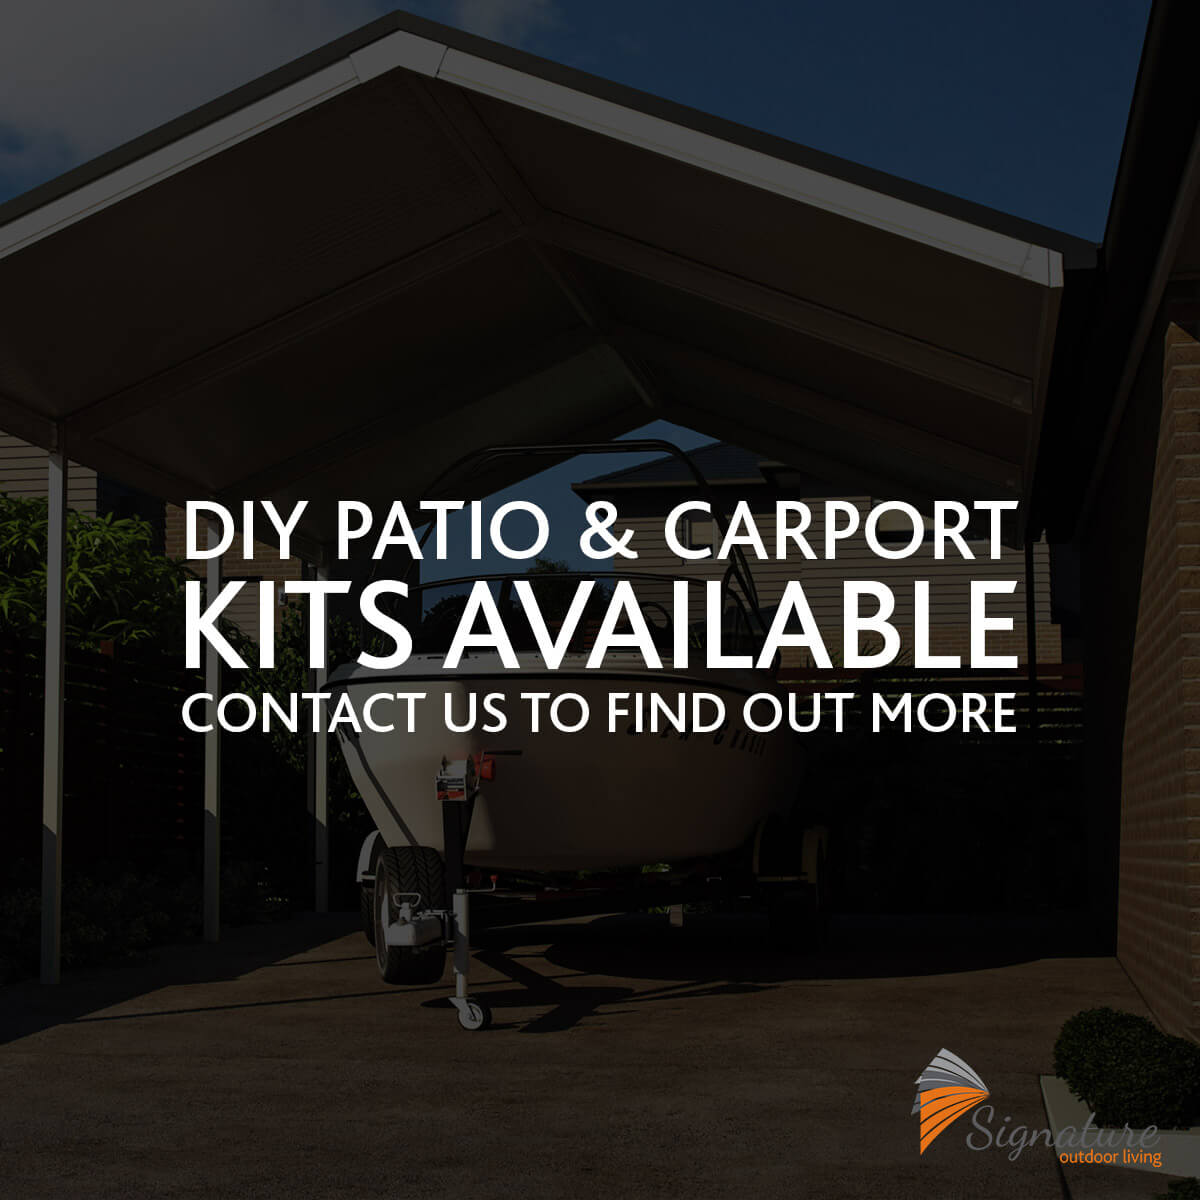 patio diy kits carport diy kits signature outdoor living